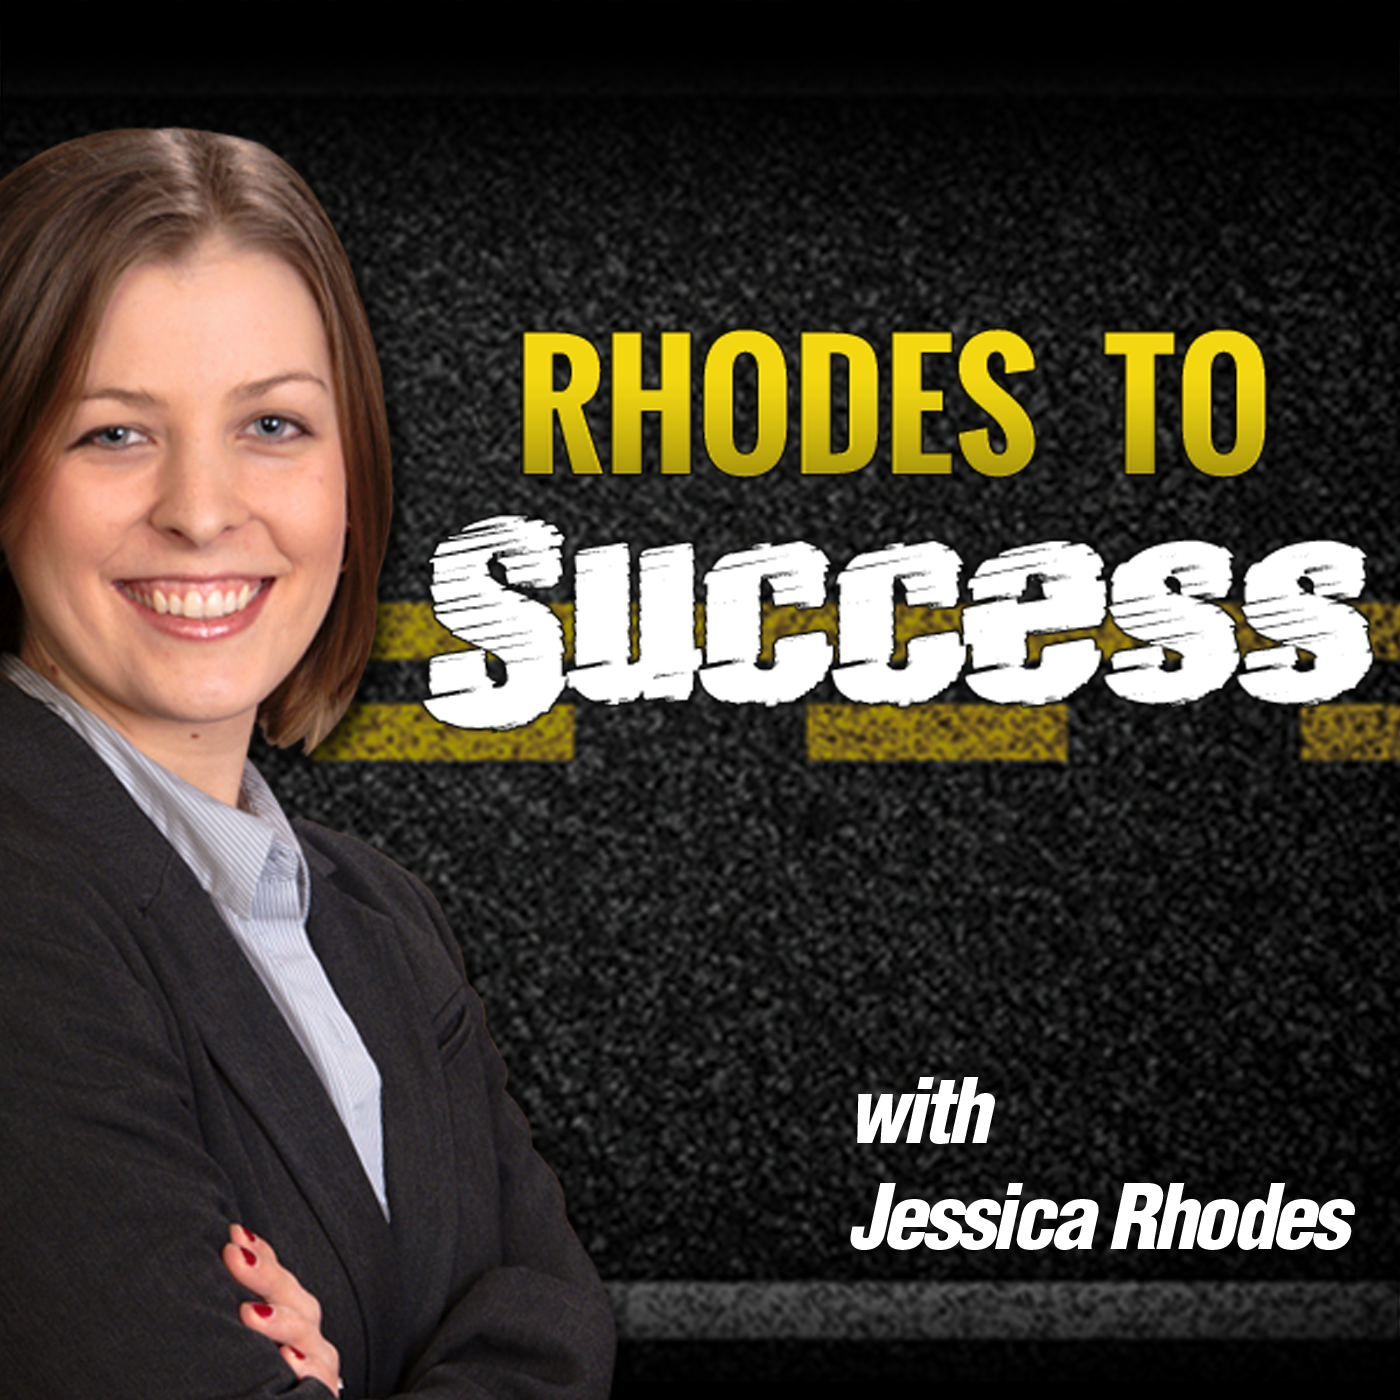 Jessica_Rhodes_To_Success_Podcast.png